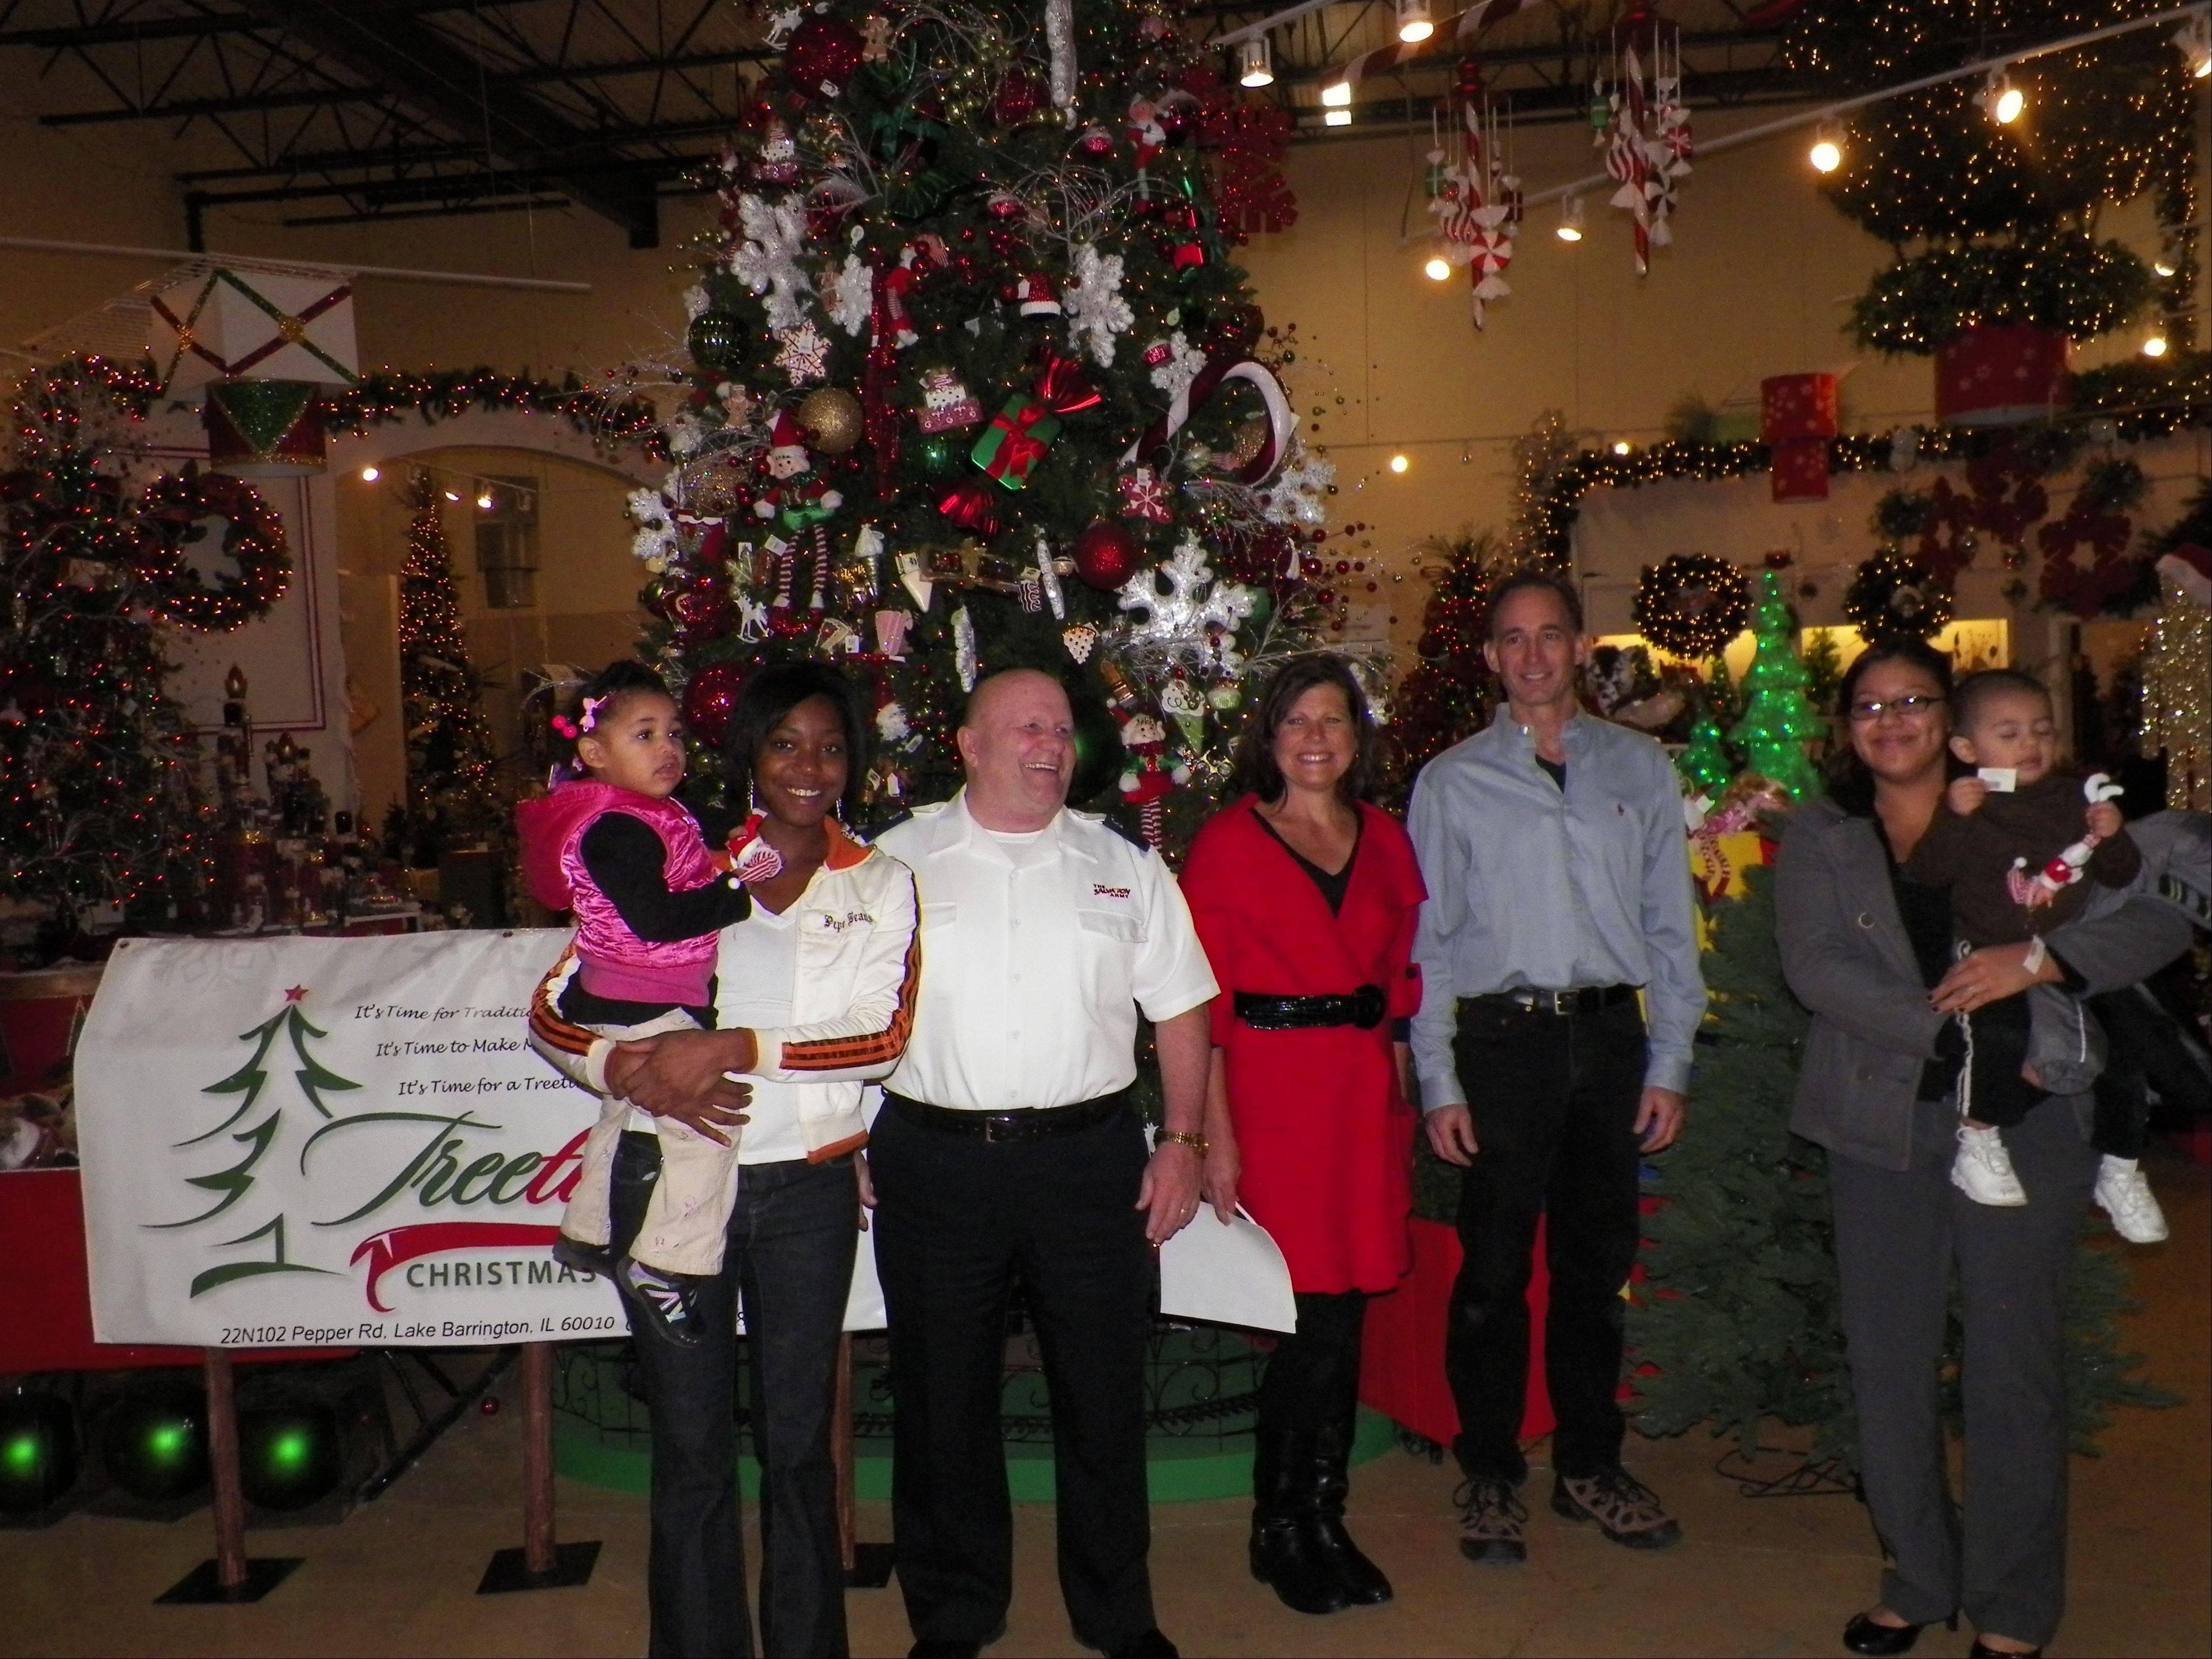 From left, Versatility Johnson and her daughter Zamya, 2, of North Chicago pose with Salvation Army Envoy Dennis Earnhart, Laurie and Joe Kane of Treetime Christmas Creations, and Marisa Soto and son Jayden, 1�, of Waukegan. The single moms were at the Lake Barrington business to pick out Christmas trees.